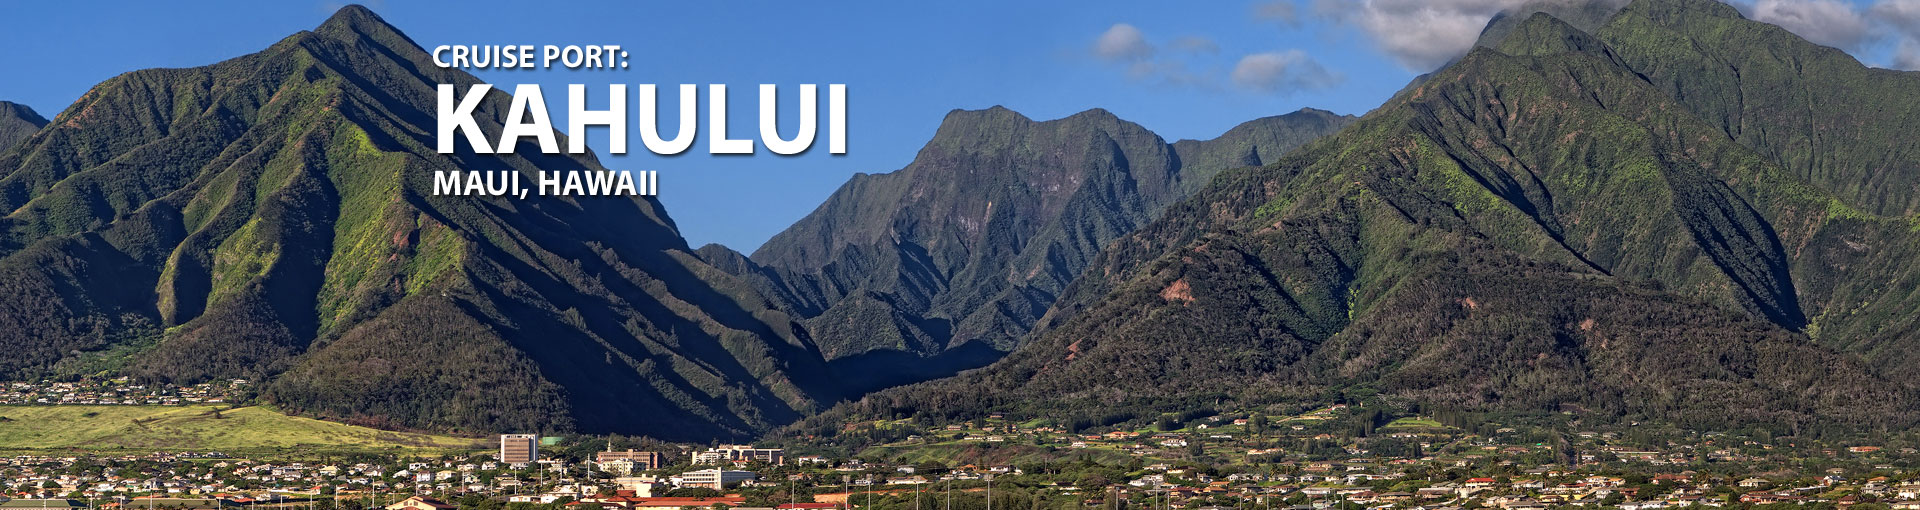 Cruises to Kahului, Maui, Hawaii